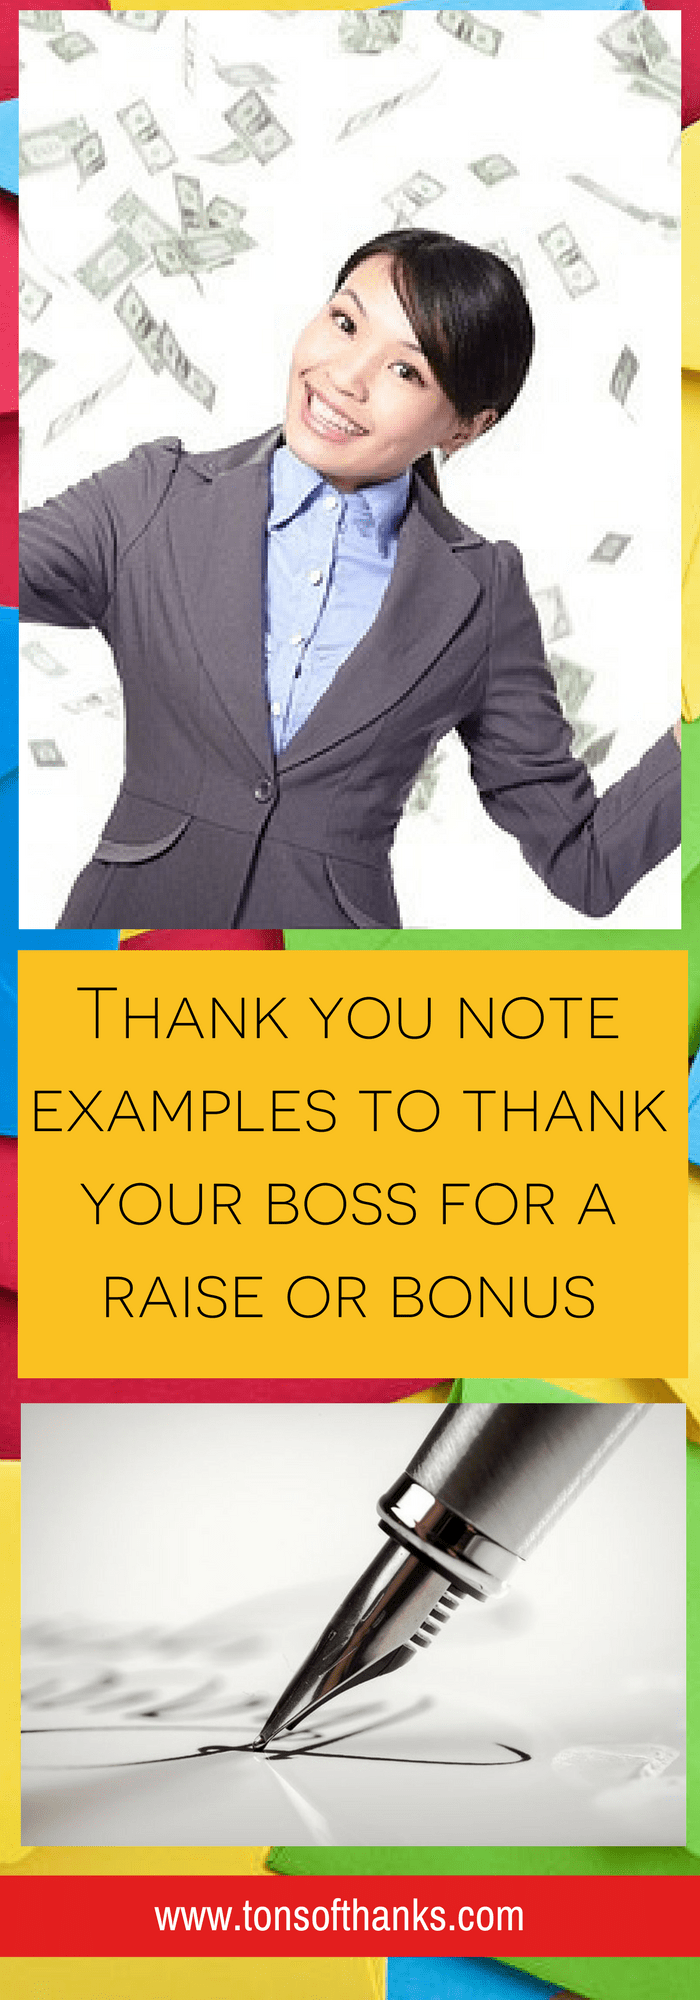 Thank your boss for a bonus or raise